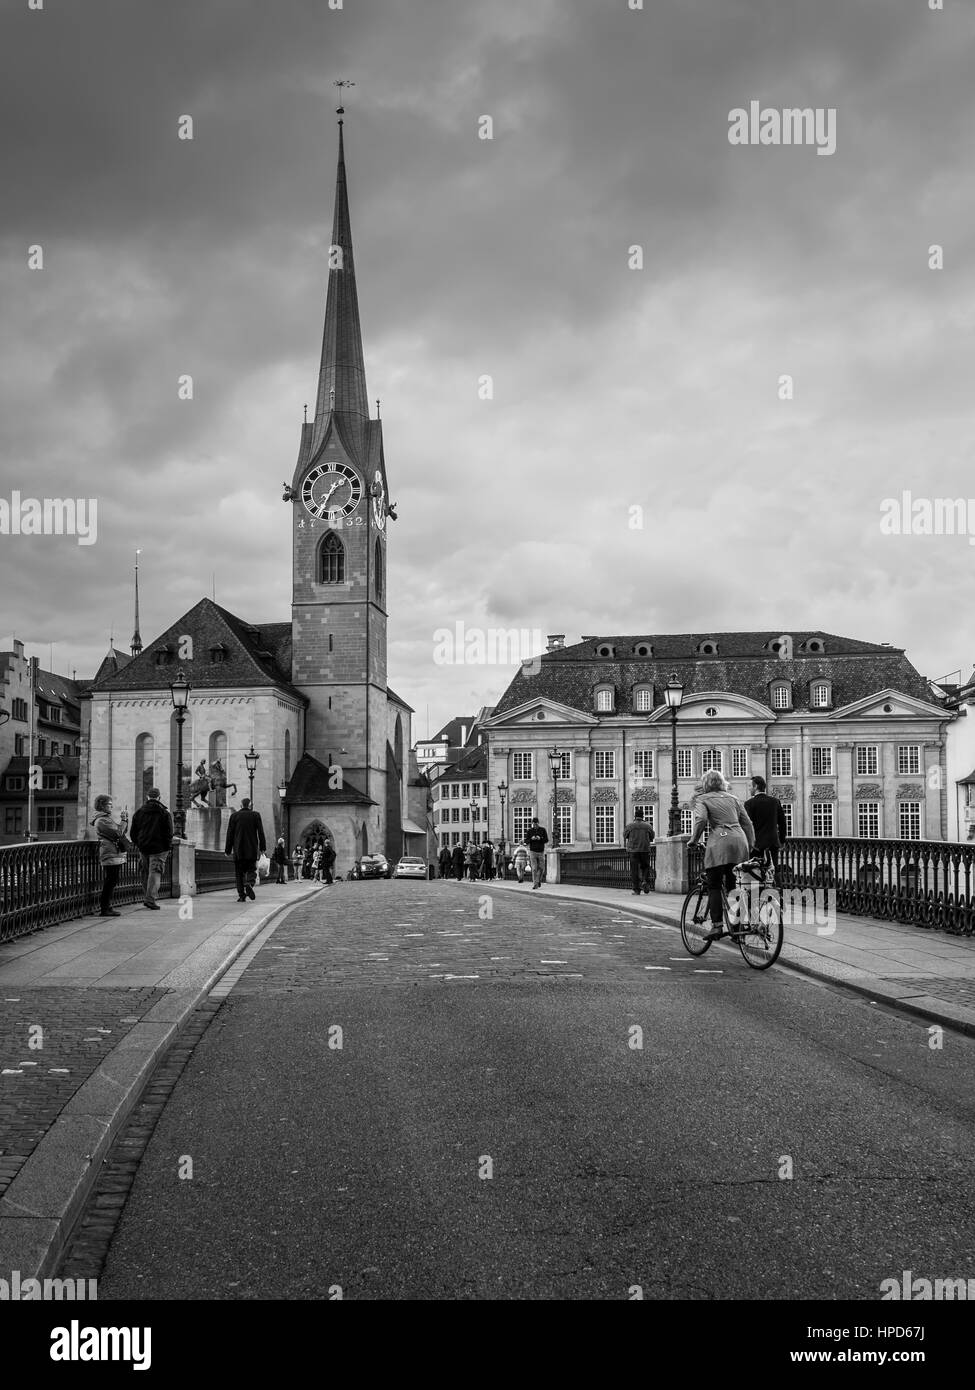 Zurich, Switzerland - May 24, 2016: Characteristic architecture (Fraumuenster church) in the old city center of - Stock Image